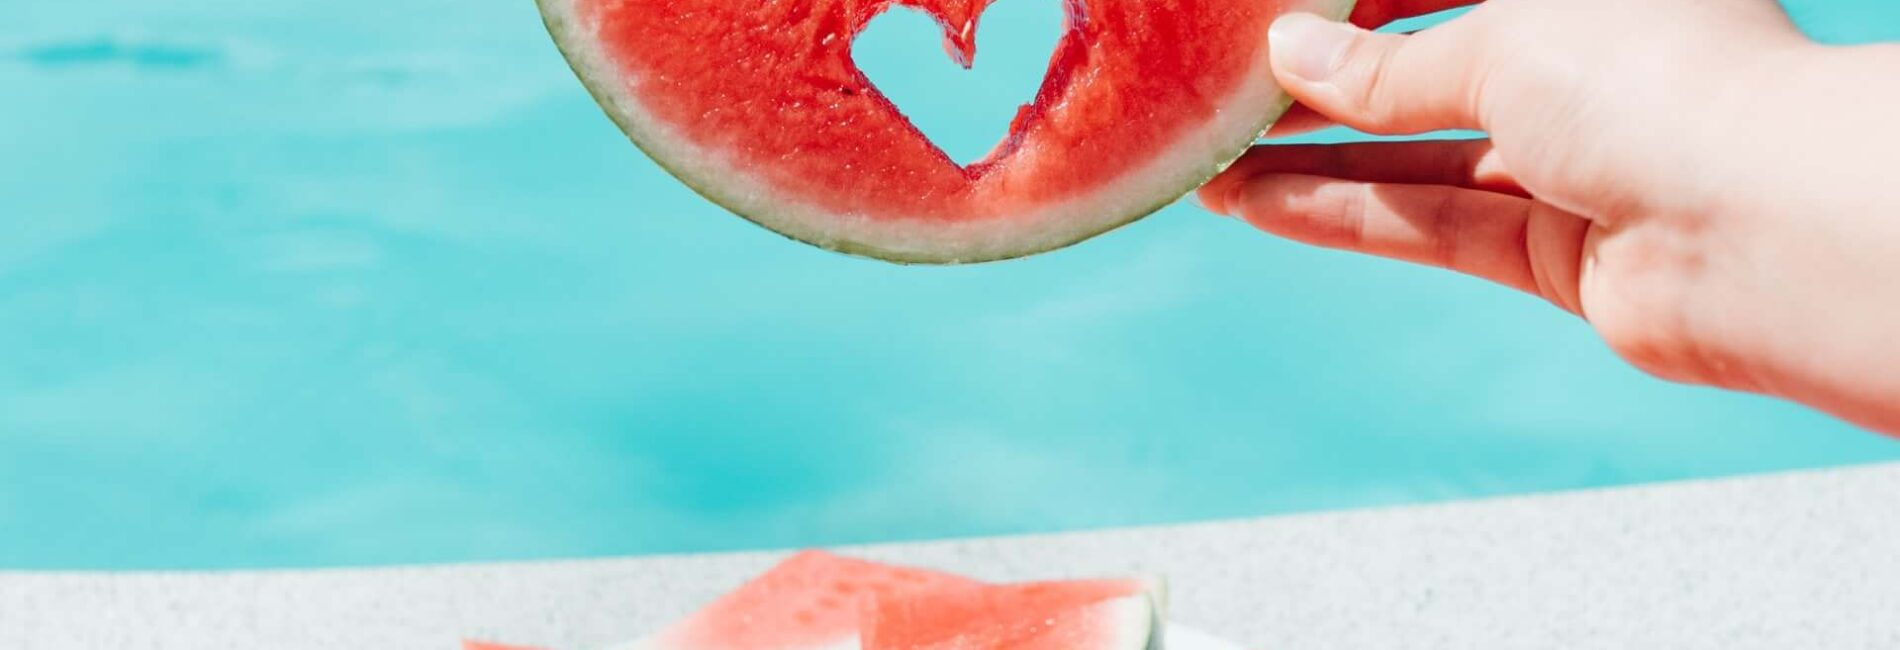 How to Choose a Ripe Watermelon and Reap the Health Benefits!